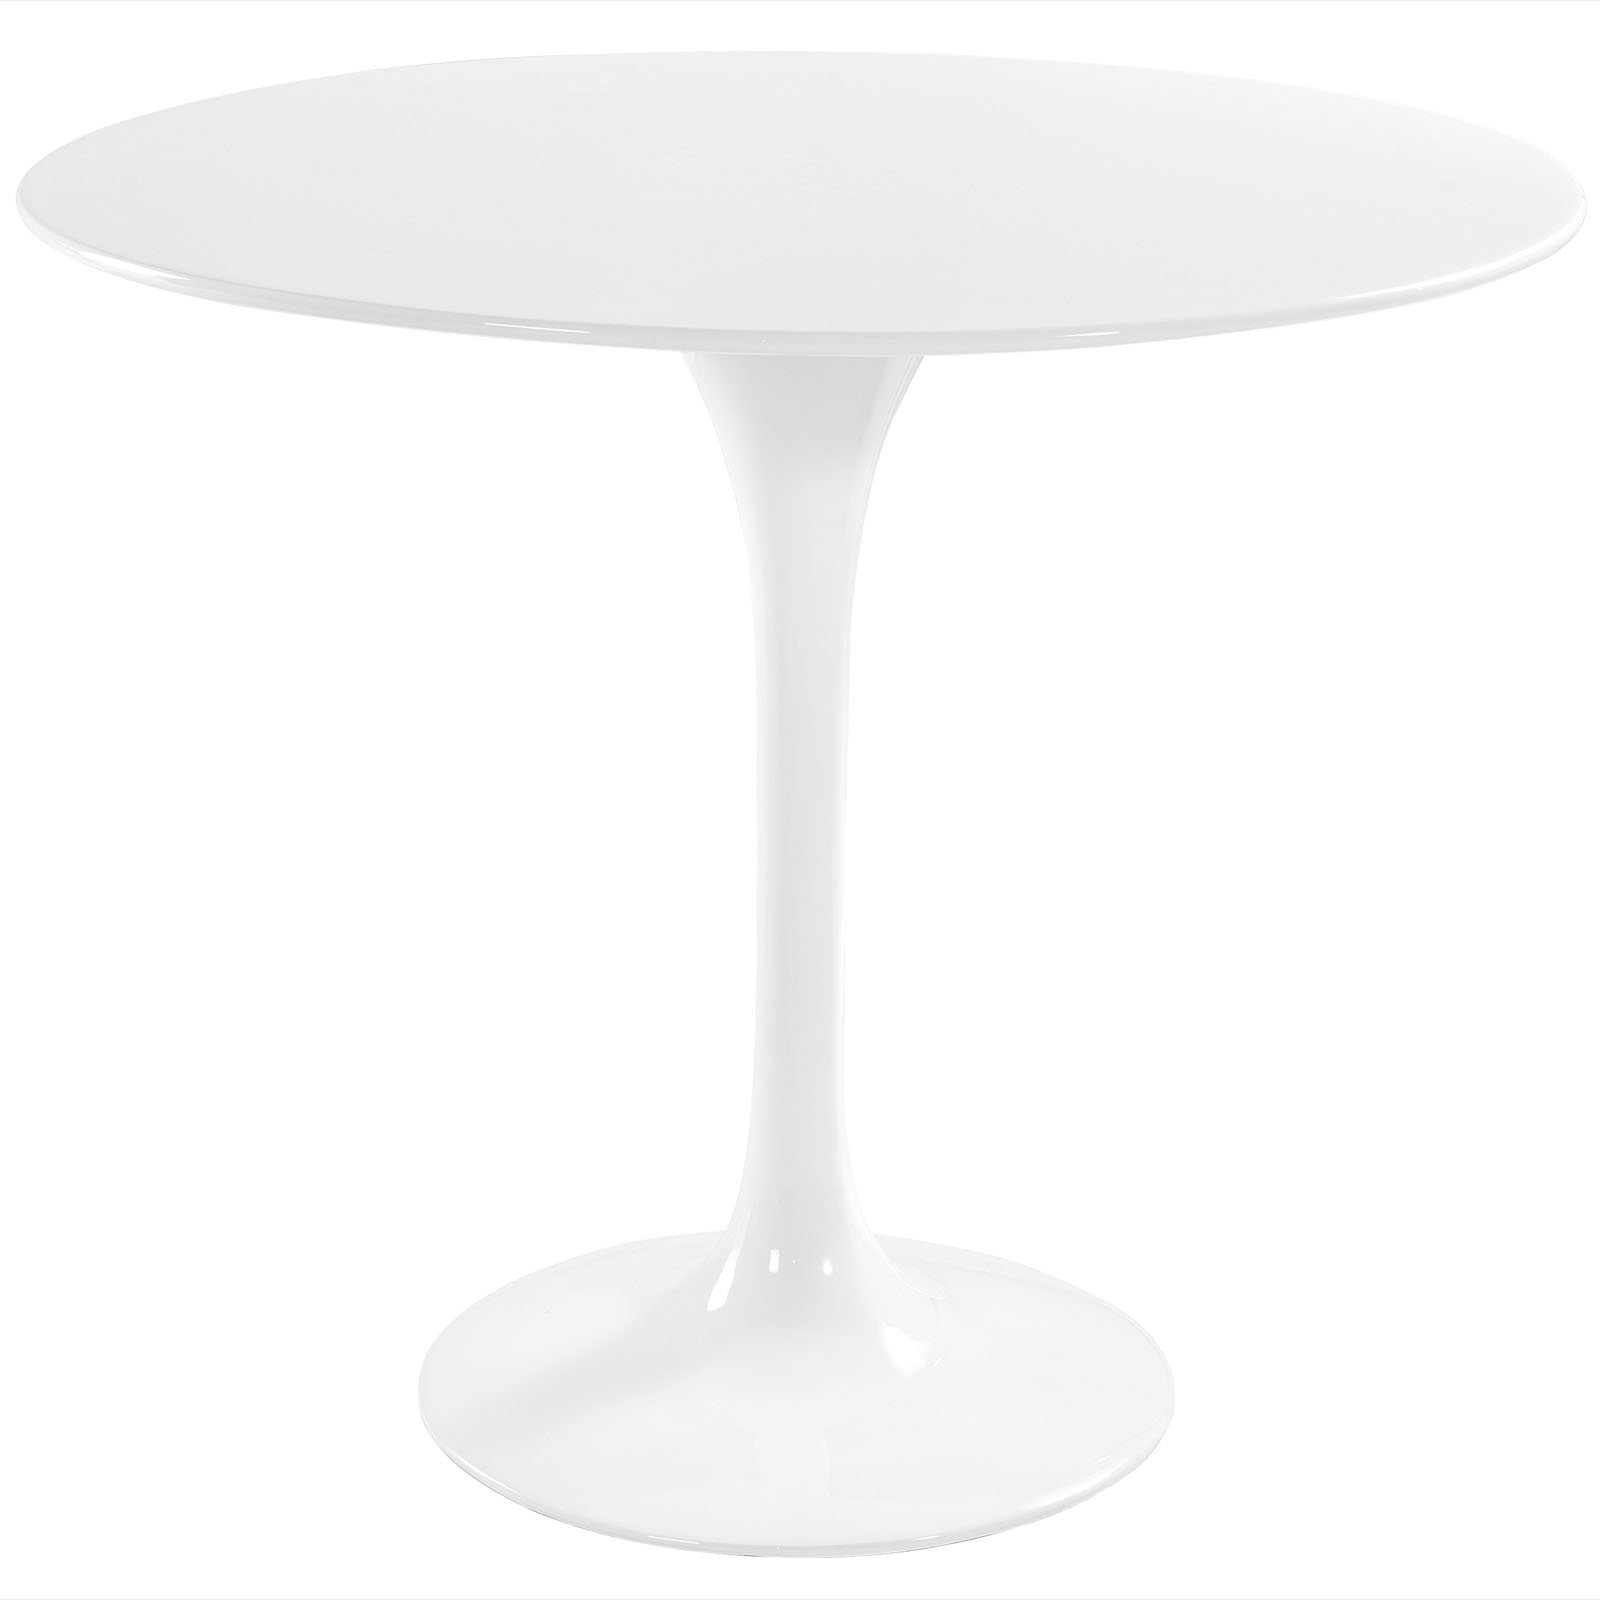 Modernist 36'' Round Fiberglass Pedestal Table in White